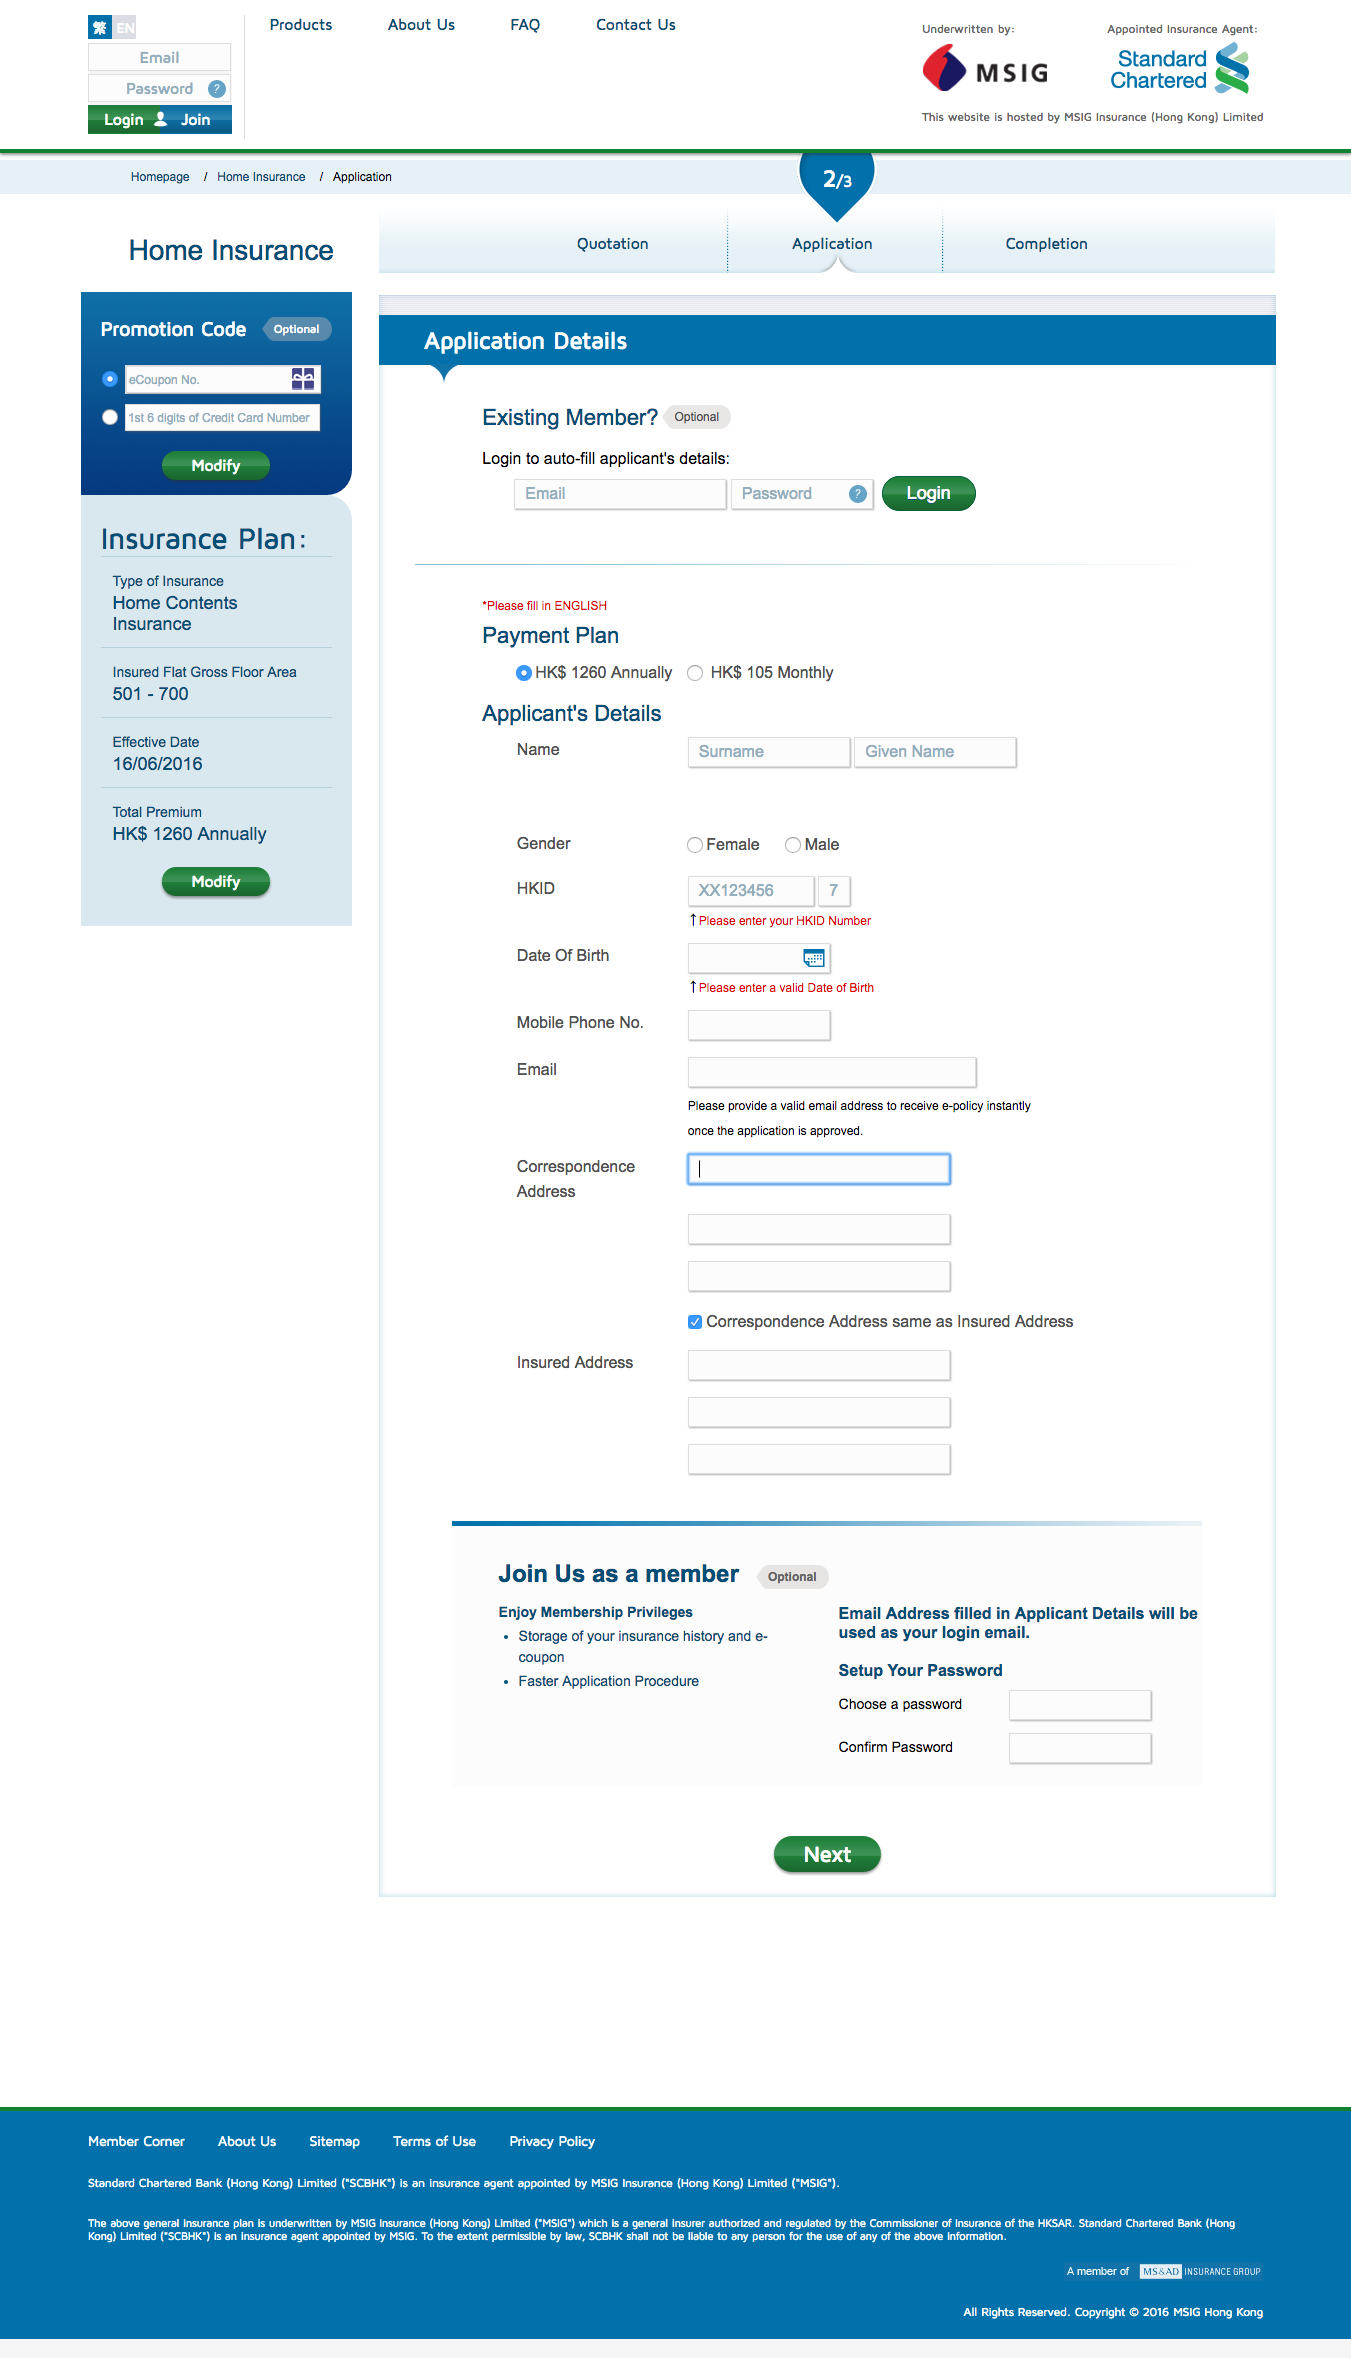 Standard Chartered Online Form How To Plan Home Insurance Online Form